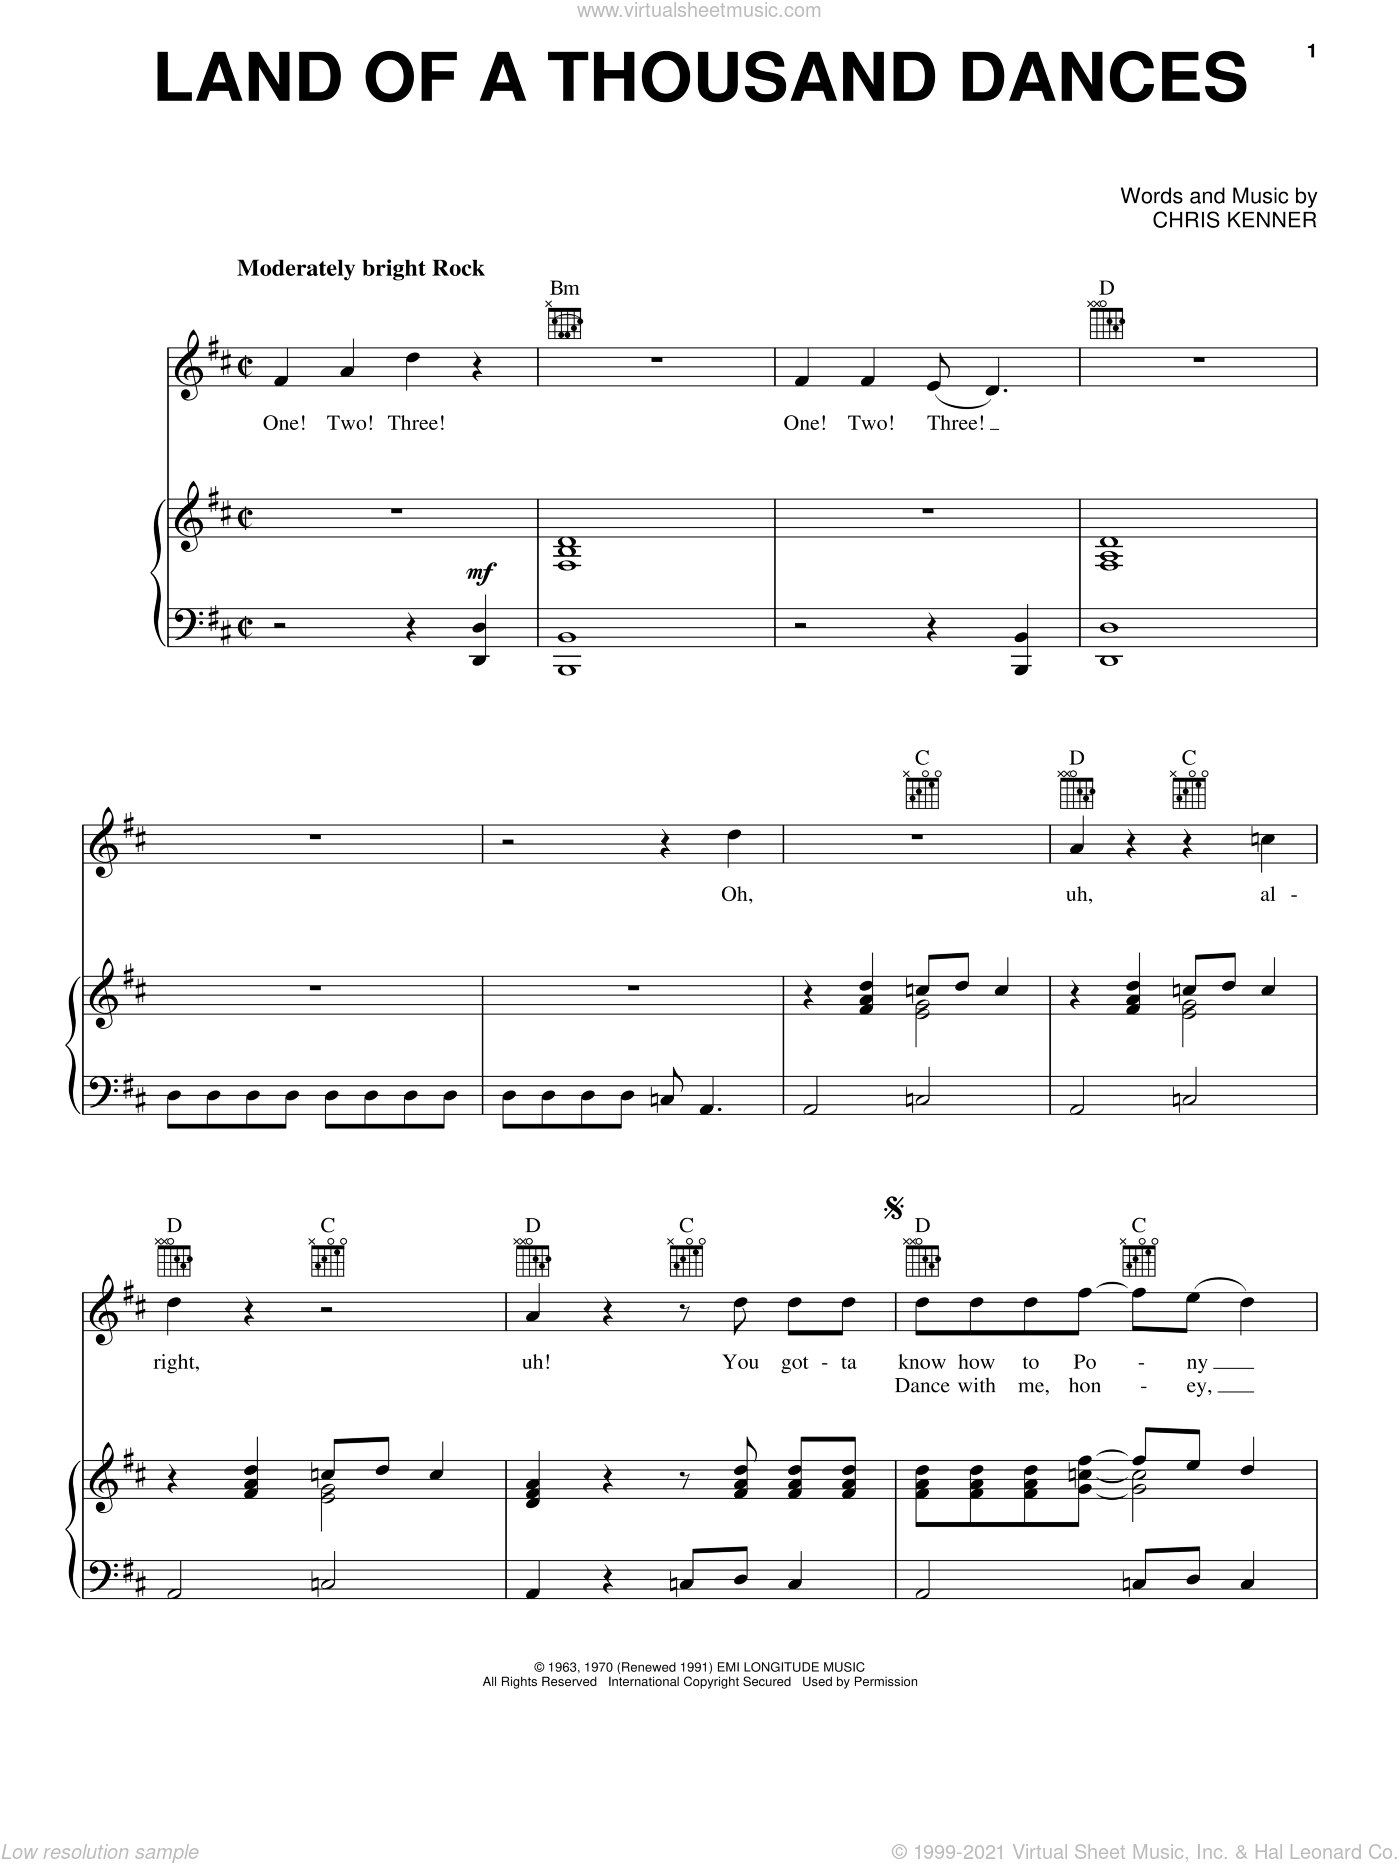 Land Of A Thousand Dances sheet music for voice, piano or guitar by Wilson Pickett and Chris Kenner, intermediate. Score Image Preview.